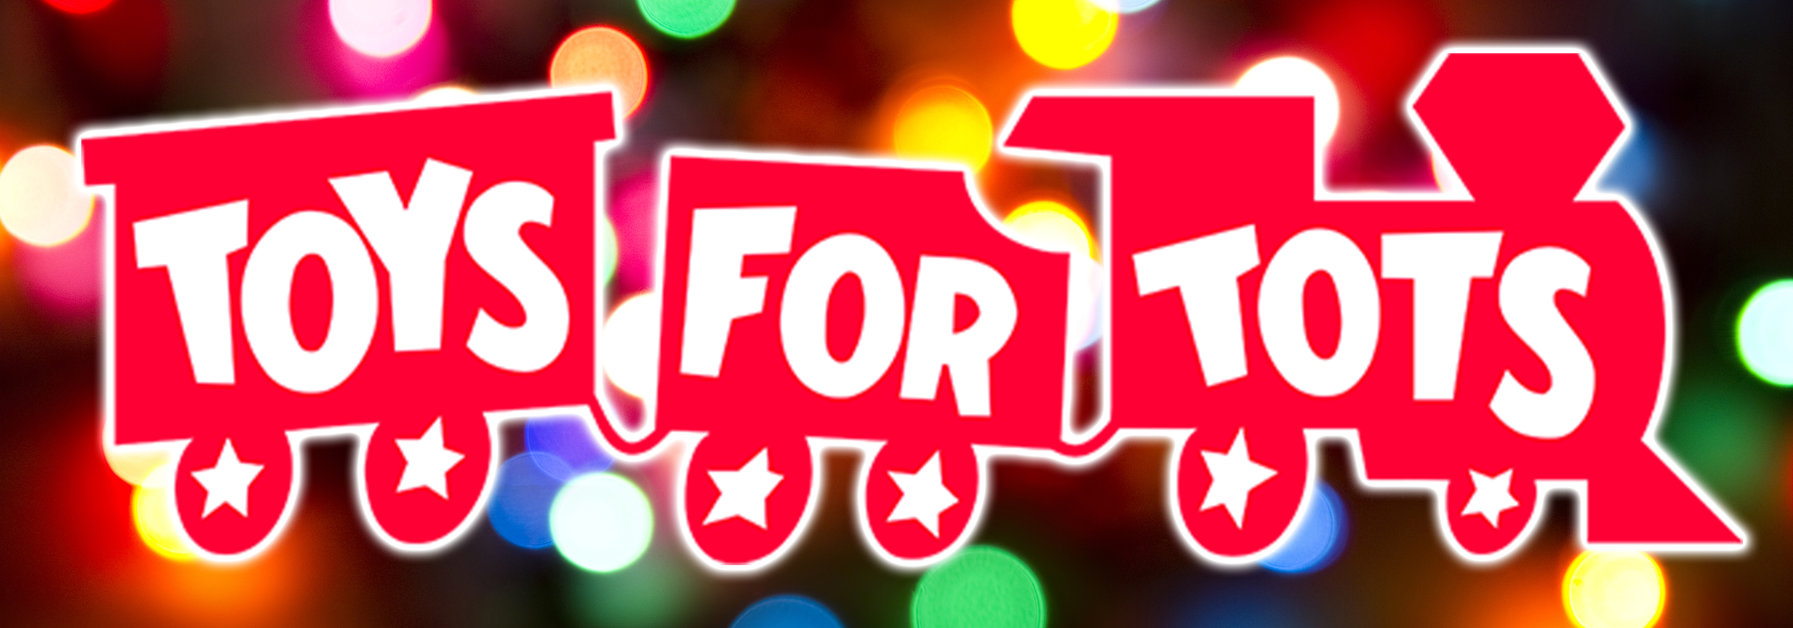 Toys For Tots Clipart Free.